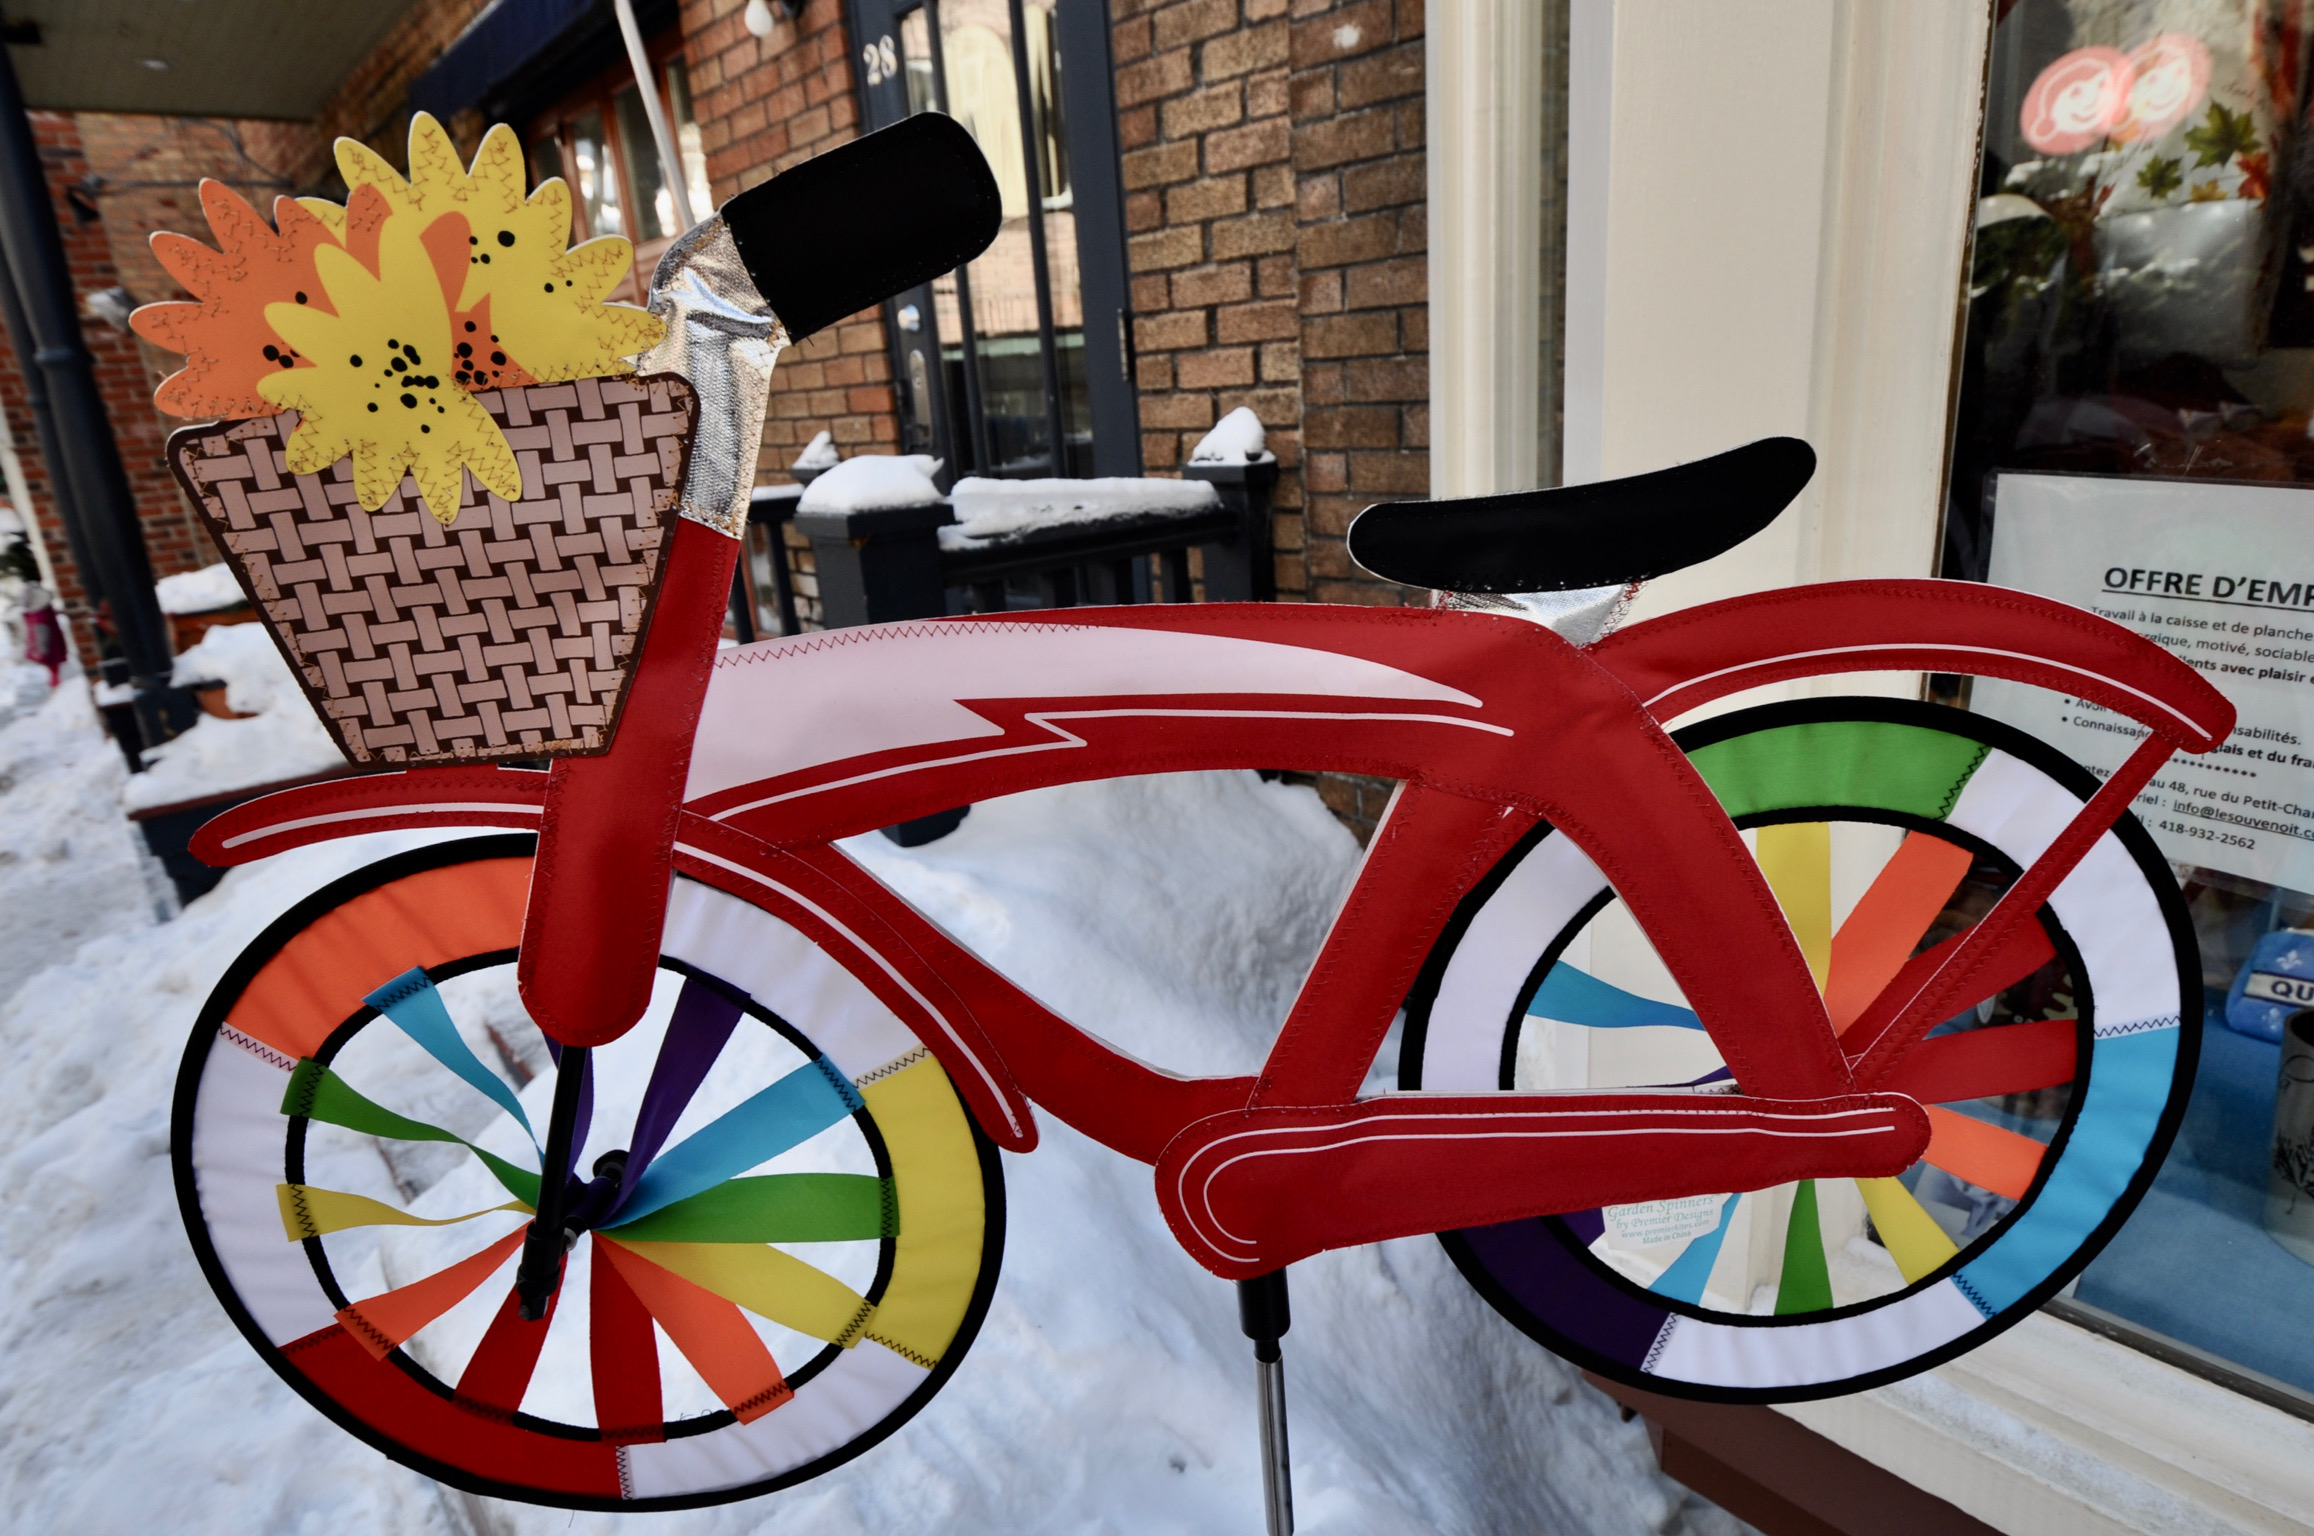 Let's go cycling in the snow - Quebec City...